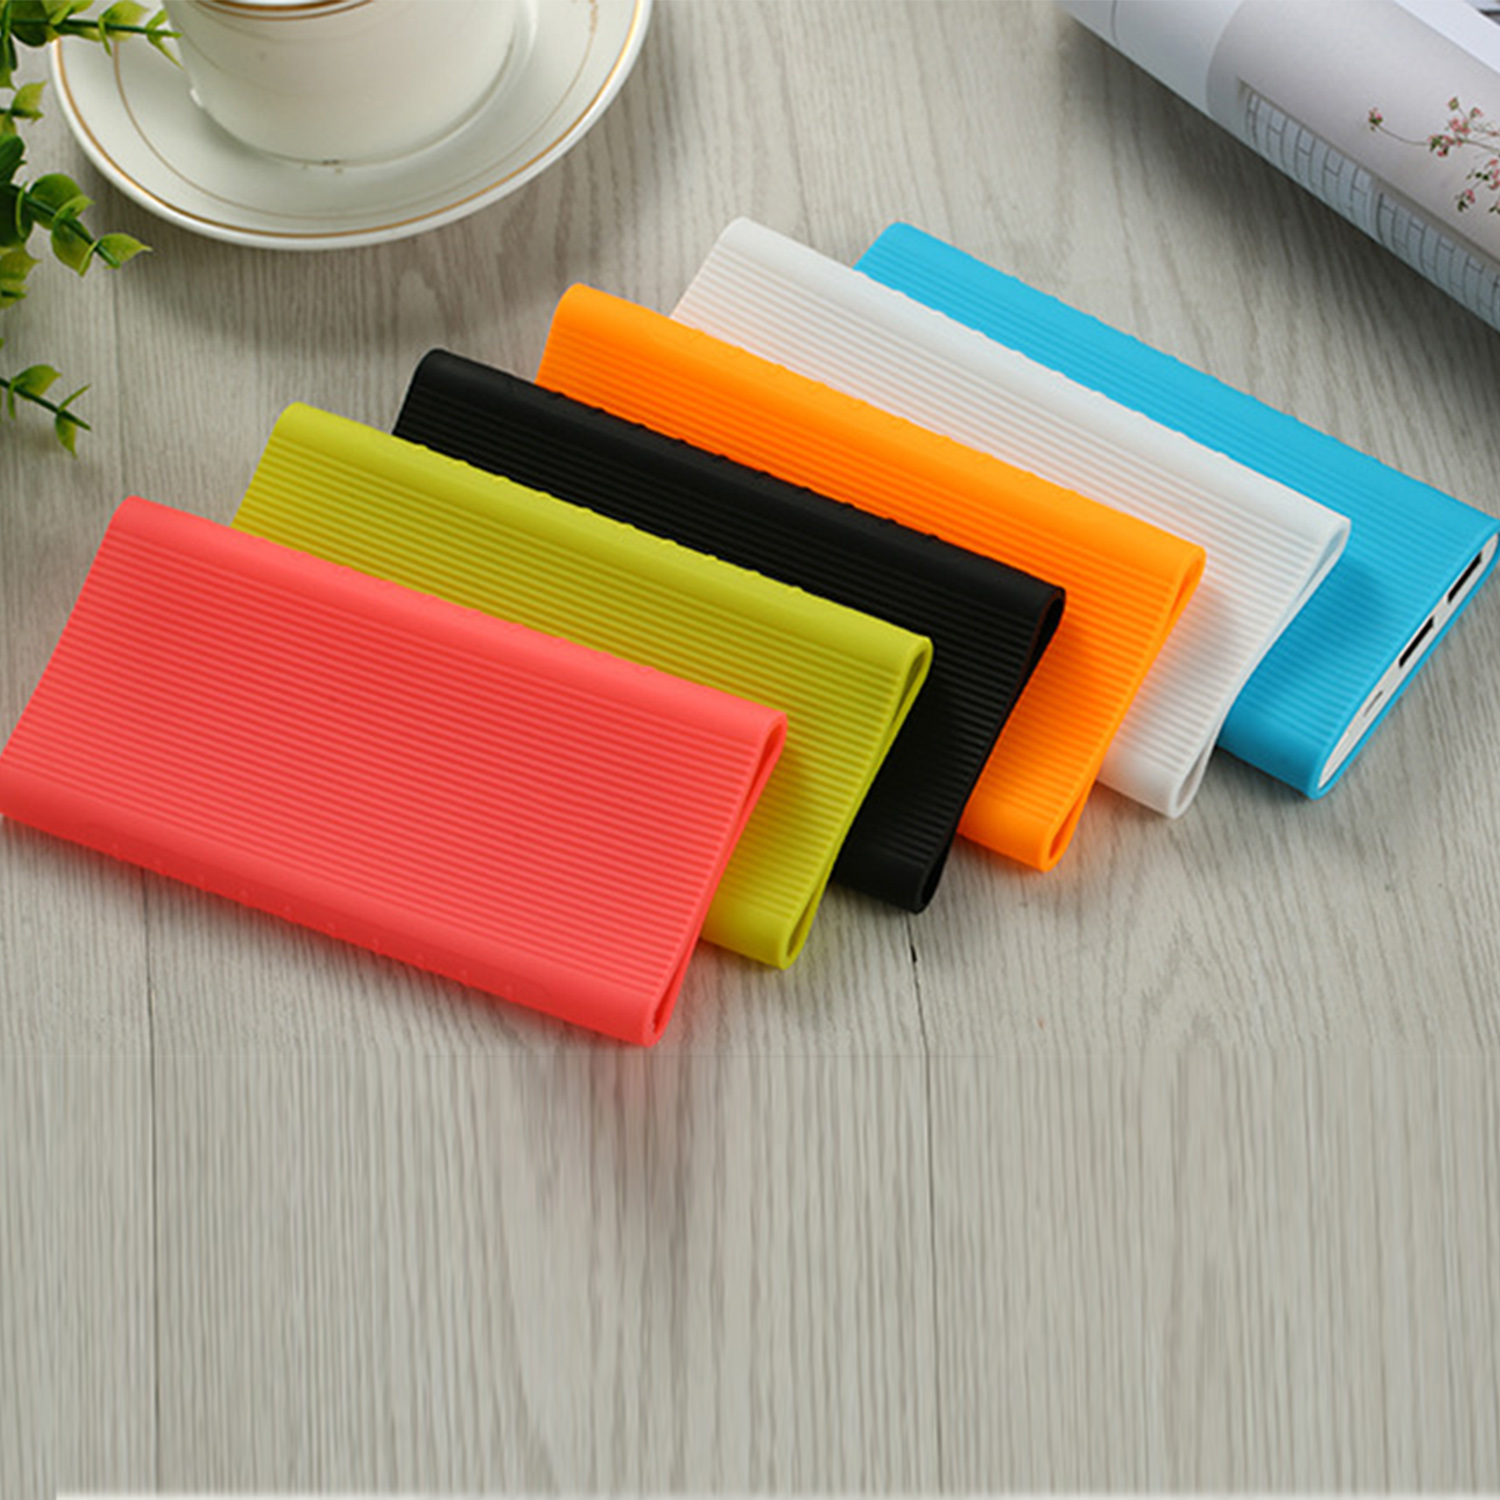 Besegad Silicone Protector Case Cover Skin for New <font><b>Xiaomi</b></font> Xiao Mi <font><b>2</b></font> 10000mAh Dual USB Power Bank <font><b>Powerbank</b></font> PLM09ZM Accessory image